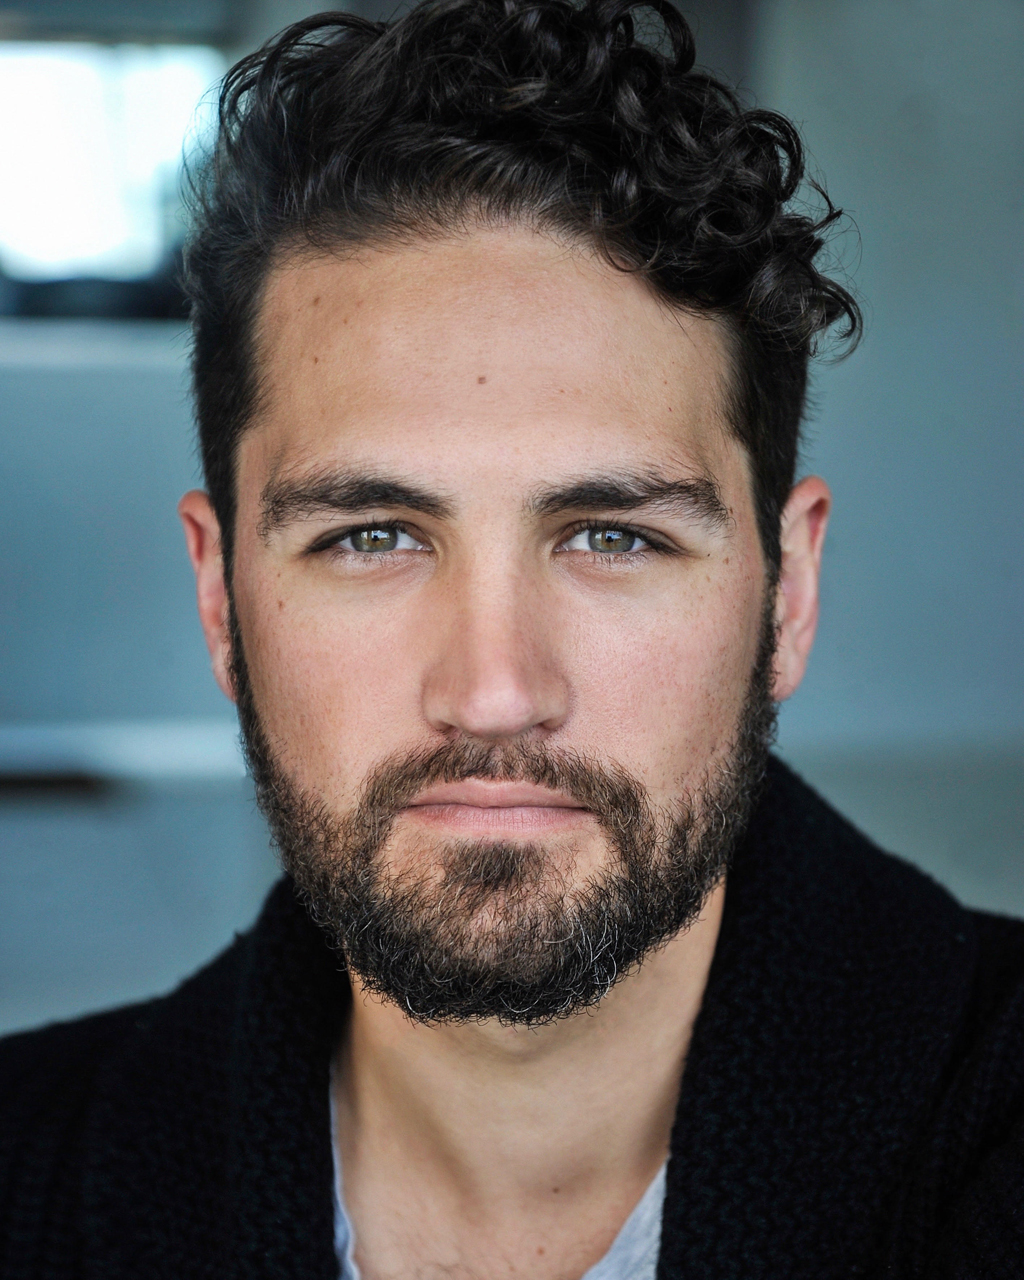 Adam Rennie has taken over the lead role of Frank N Furter in The Rocky Horror Show.